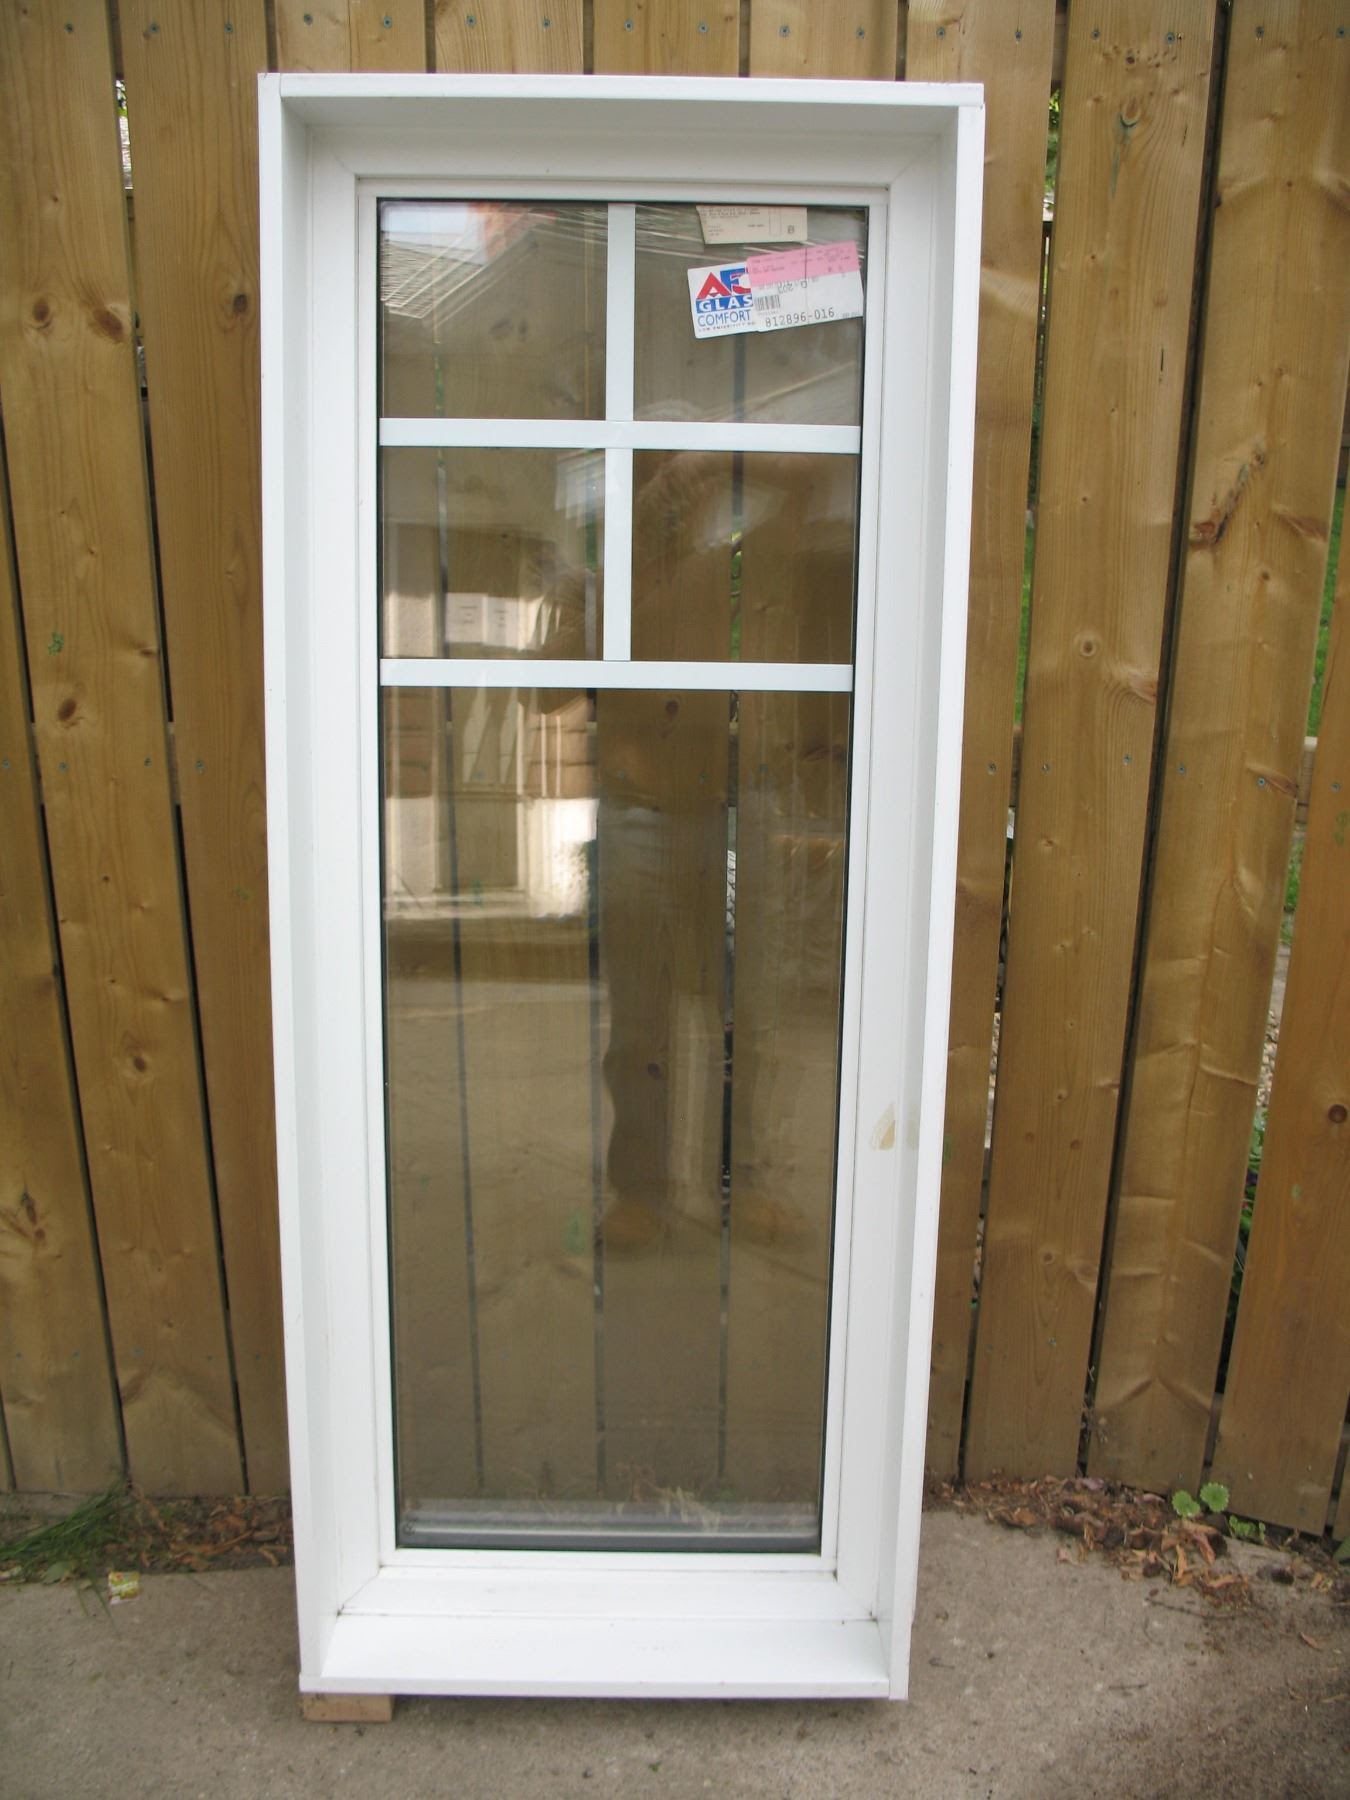 Pvc Casement Window Fixed Triple Glaze Low E Value 24x 60x 6